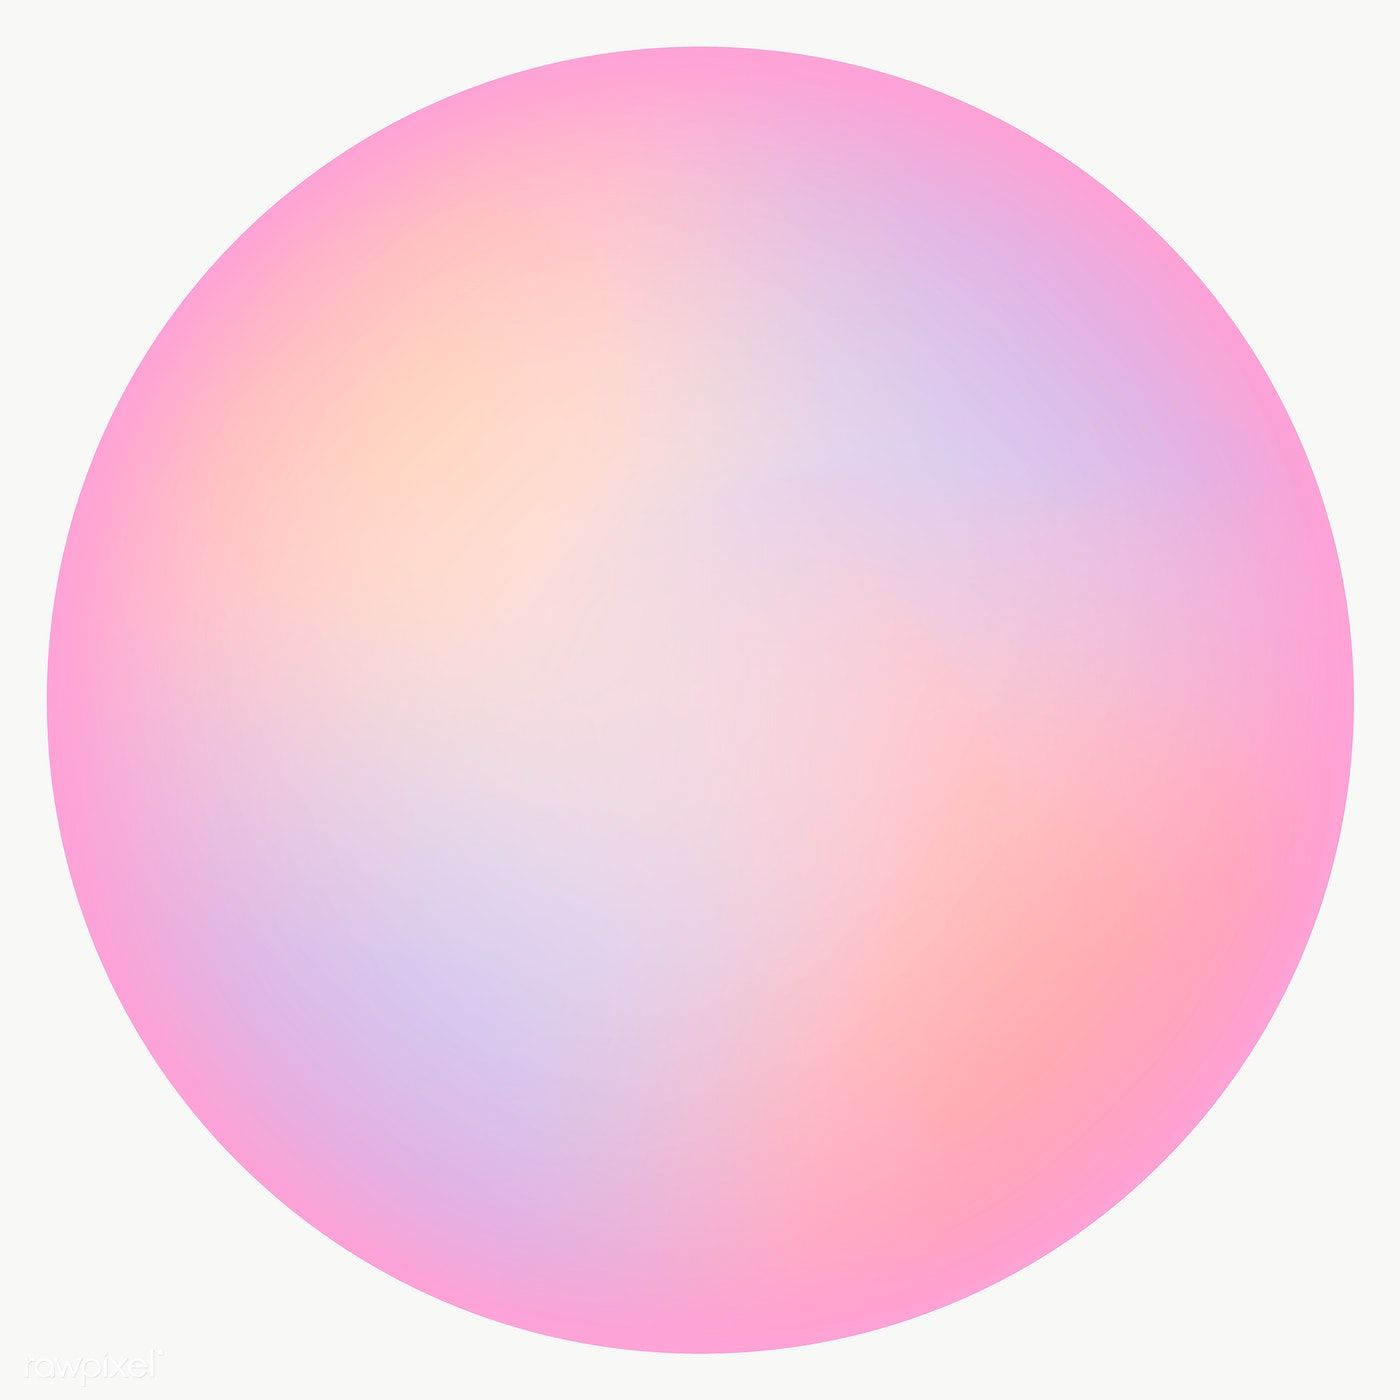 Colorful Round Gradient Element Transparent Png Premium Image By Rawpixel Com Nunny Aura Colors Abstract Expressionist Art Pastel Pink Aesthetic